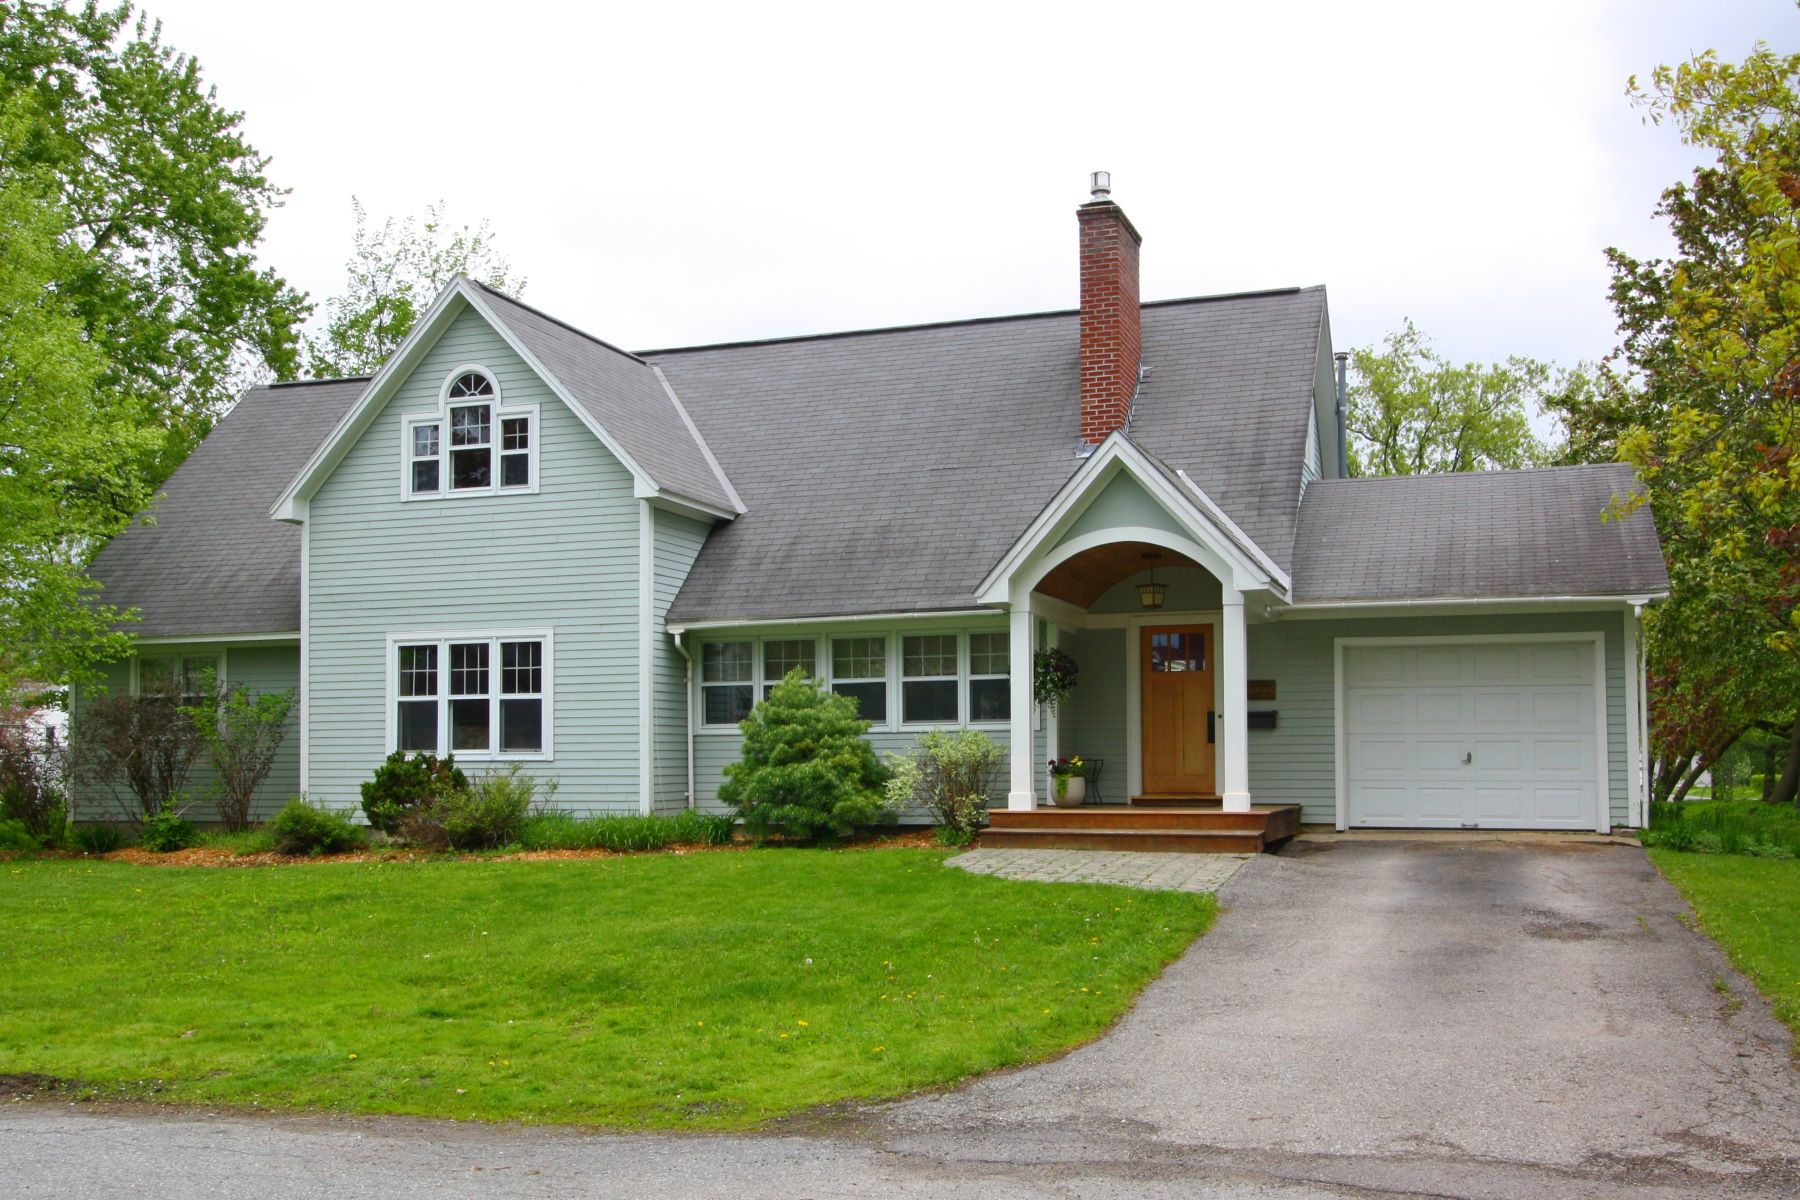 Single Family Homes for Sale at 197 Chipman Park, Middlebury 197 Chipman Park Middlebury, Vermont 05753 United States